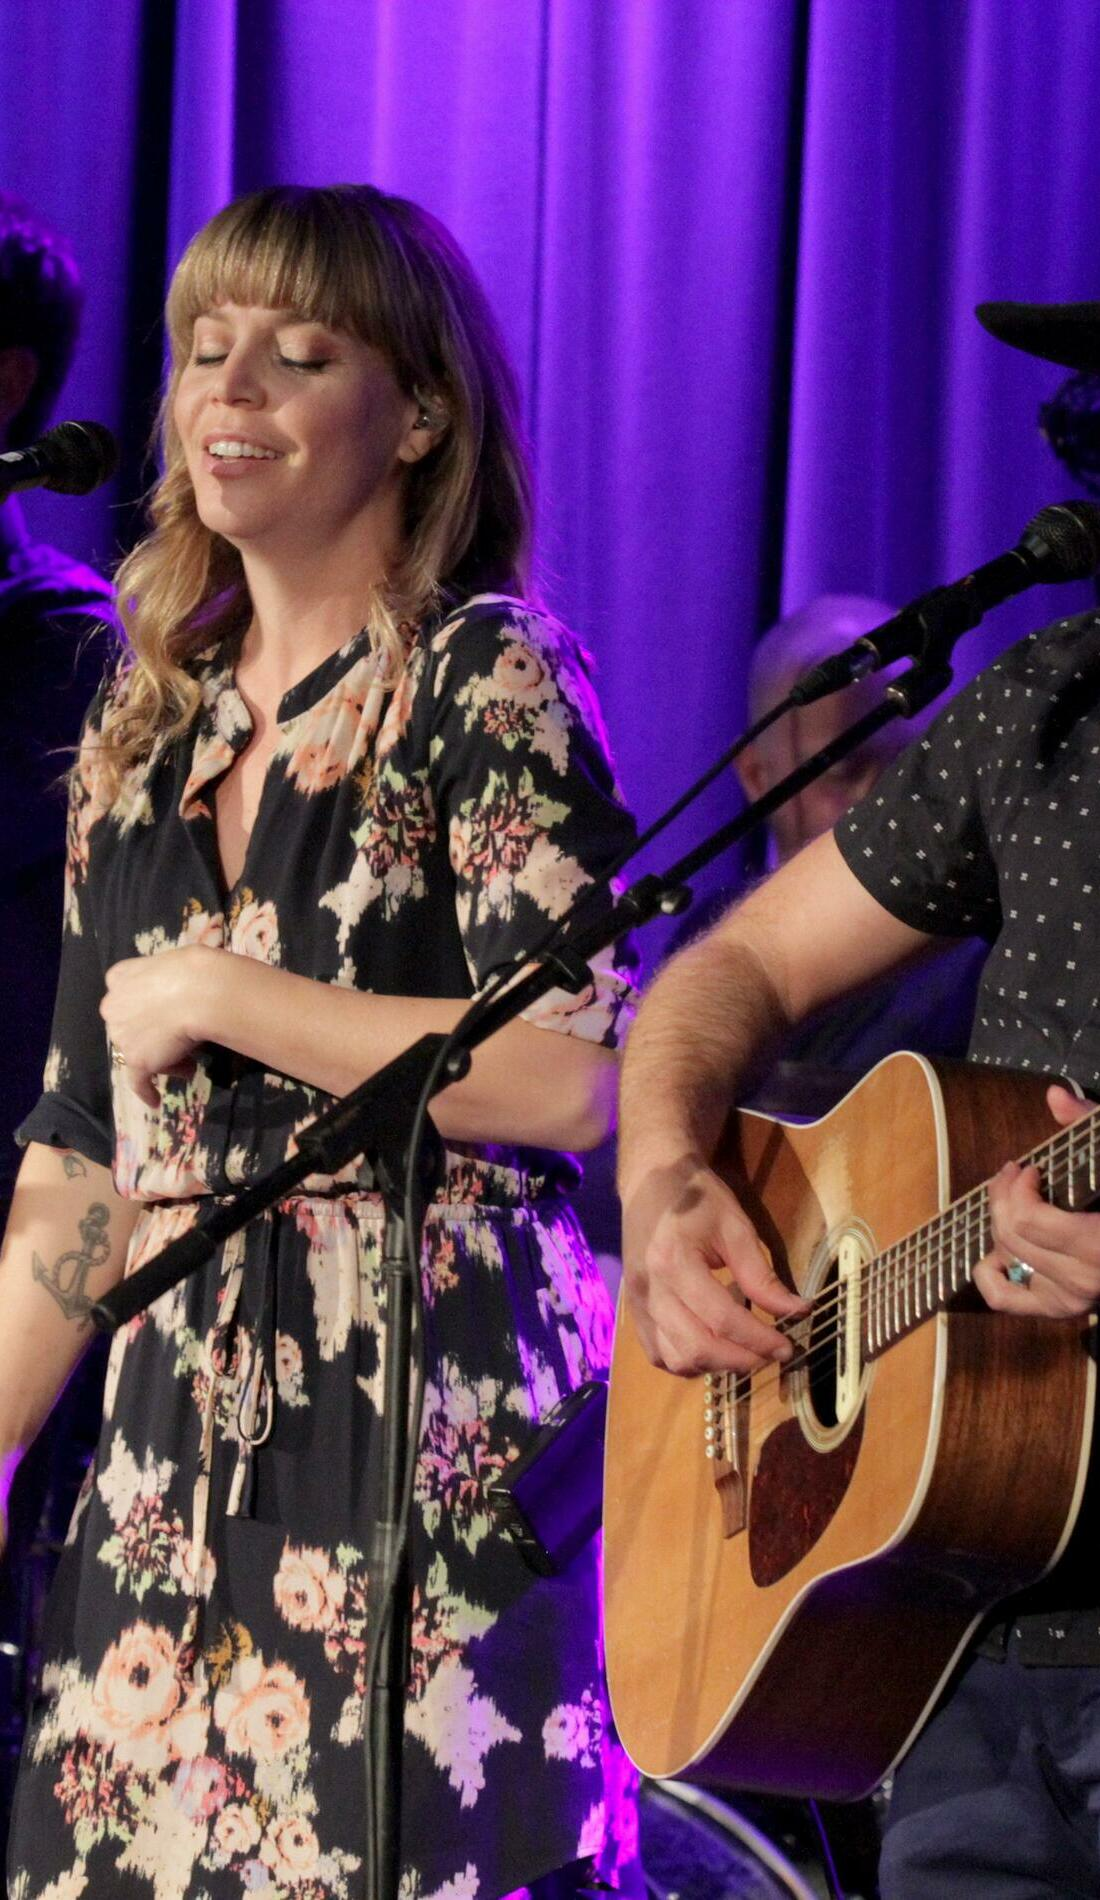 A The Dustbowl Revival live event